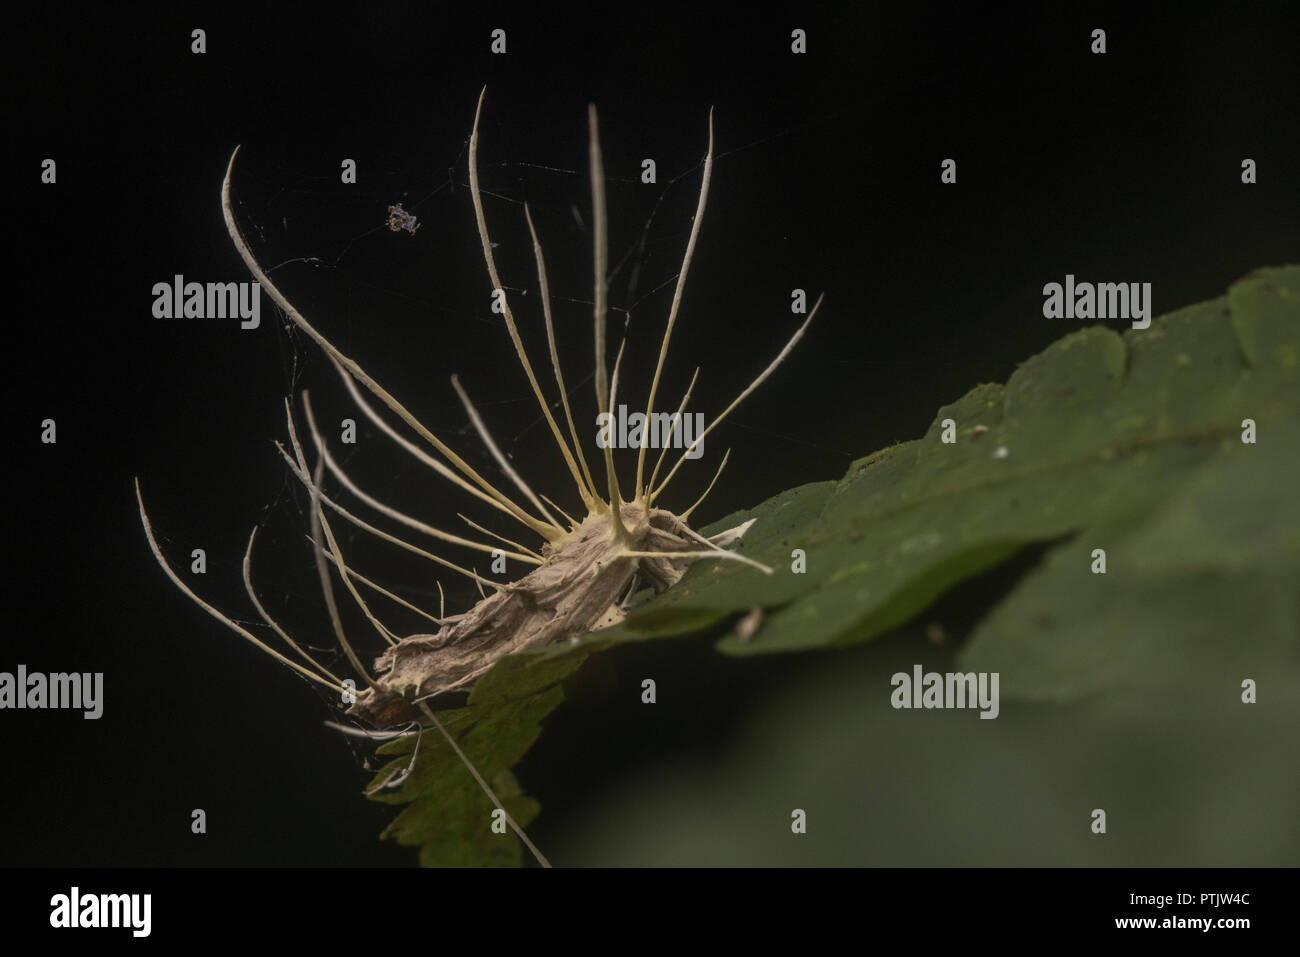 A moth that has been taken over and killed by the 'zombie fungus' a entomopathogenic fungi that takes over insect bodies. - Stock Image